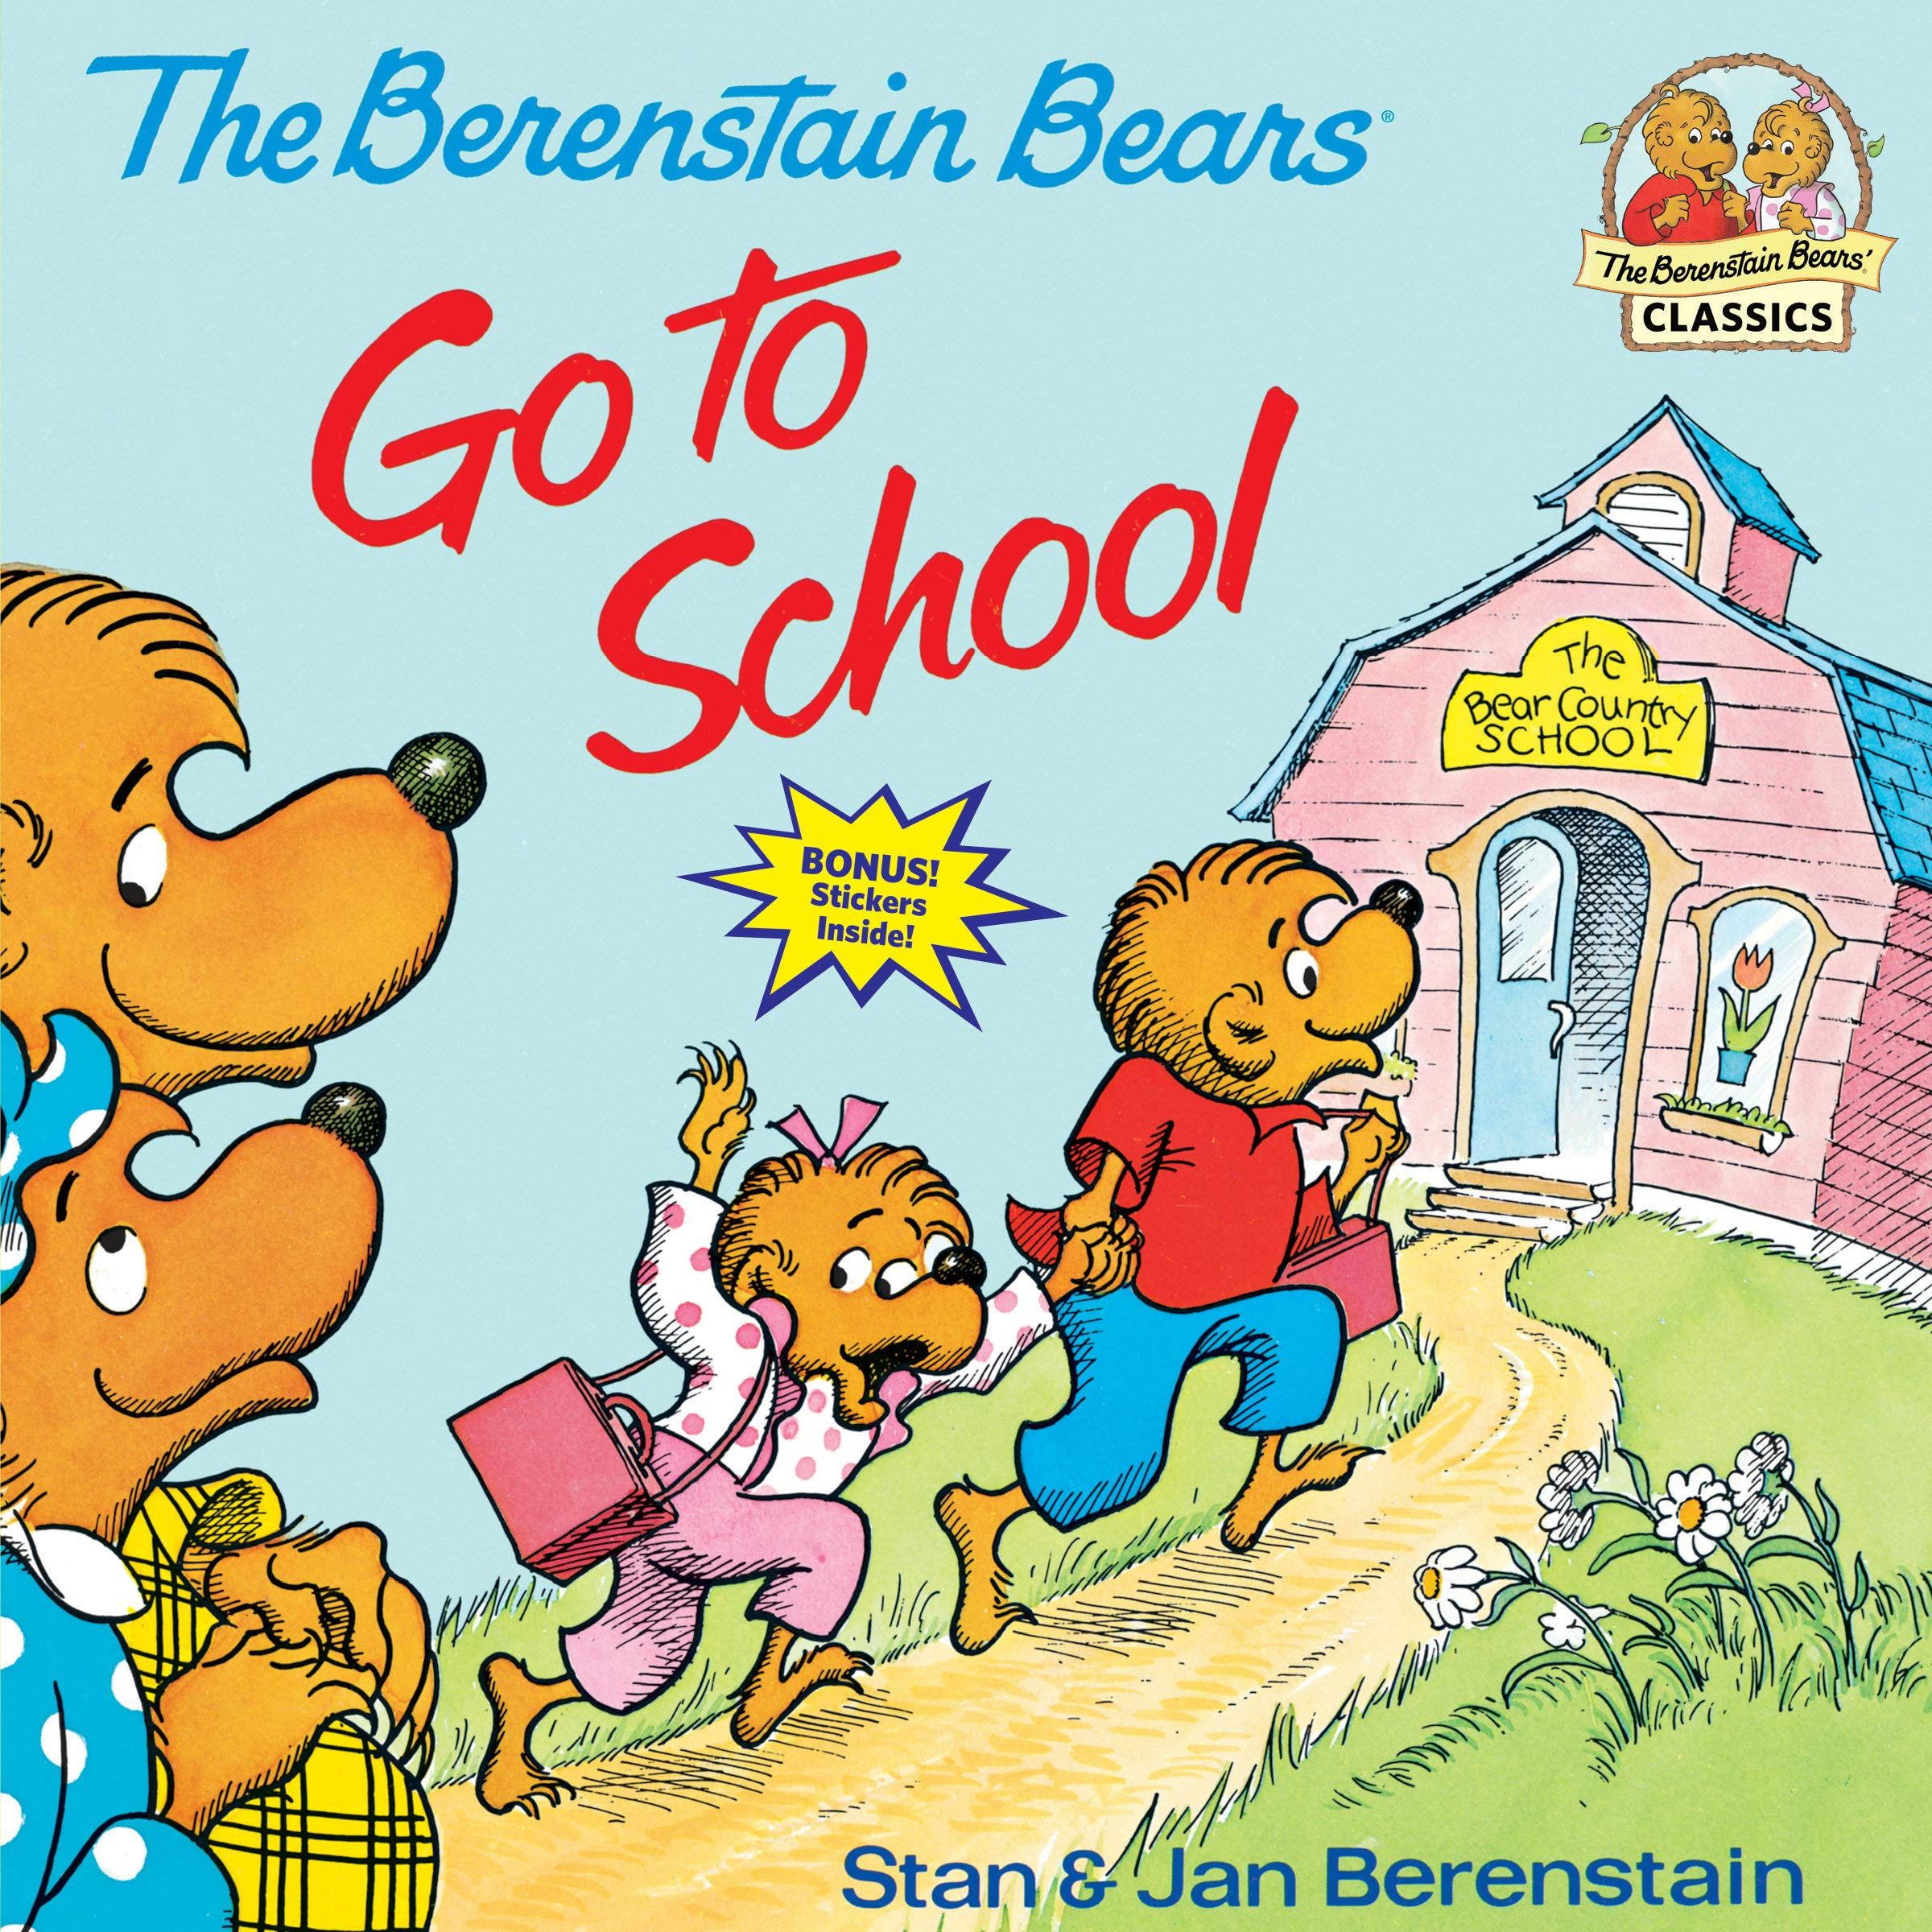 Cover of The Berenstain Bears Go to School.